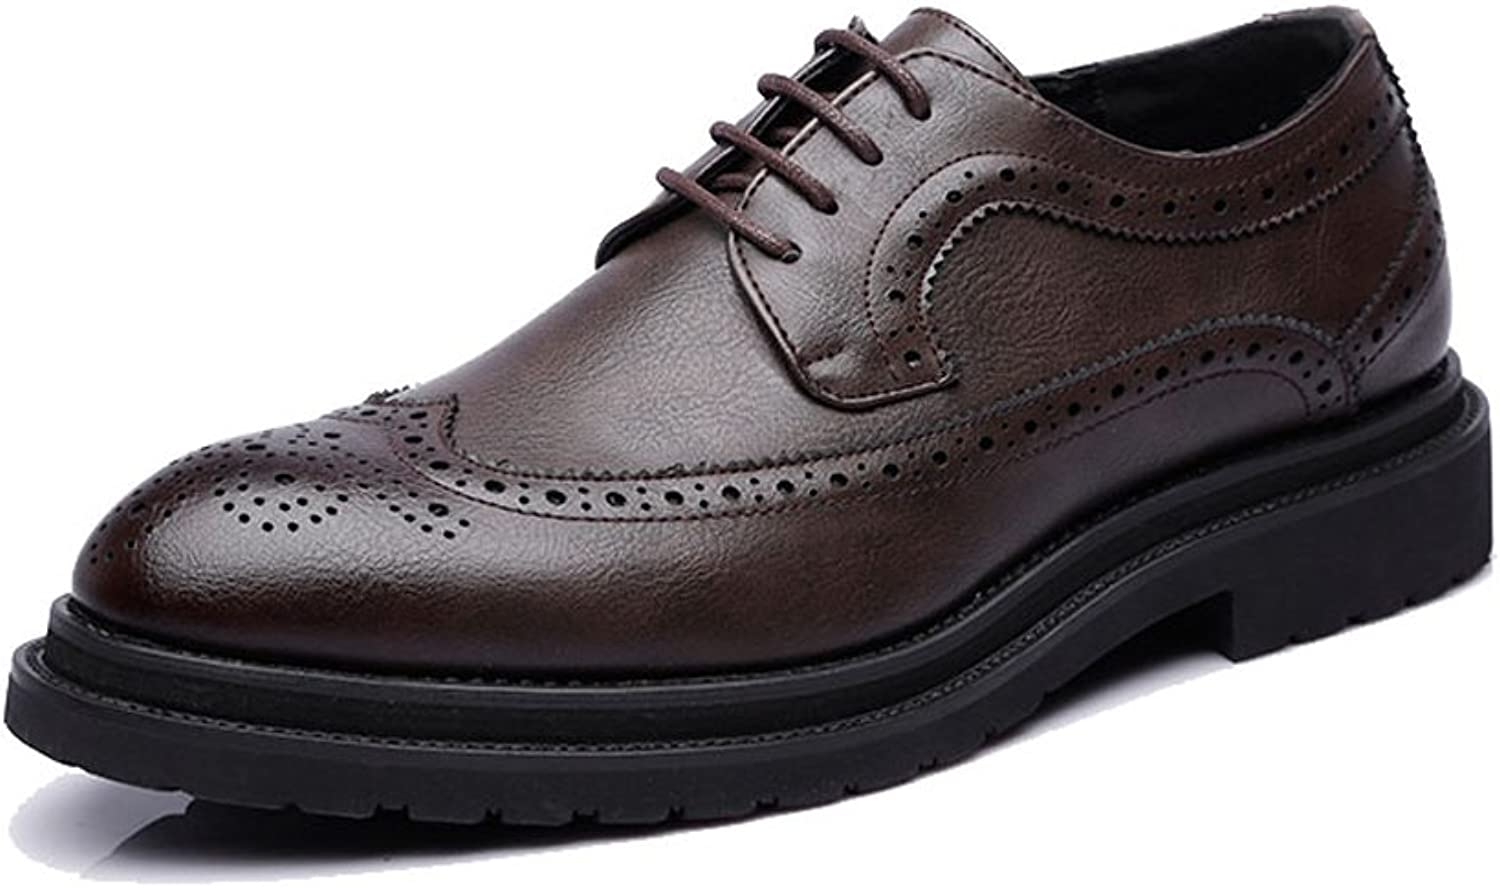 ZLQ Men's Business shoes PU Leather Upper Lace Up Wingtip Decoration Breathable Outsole Oxfords Breathable shoes